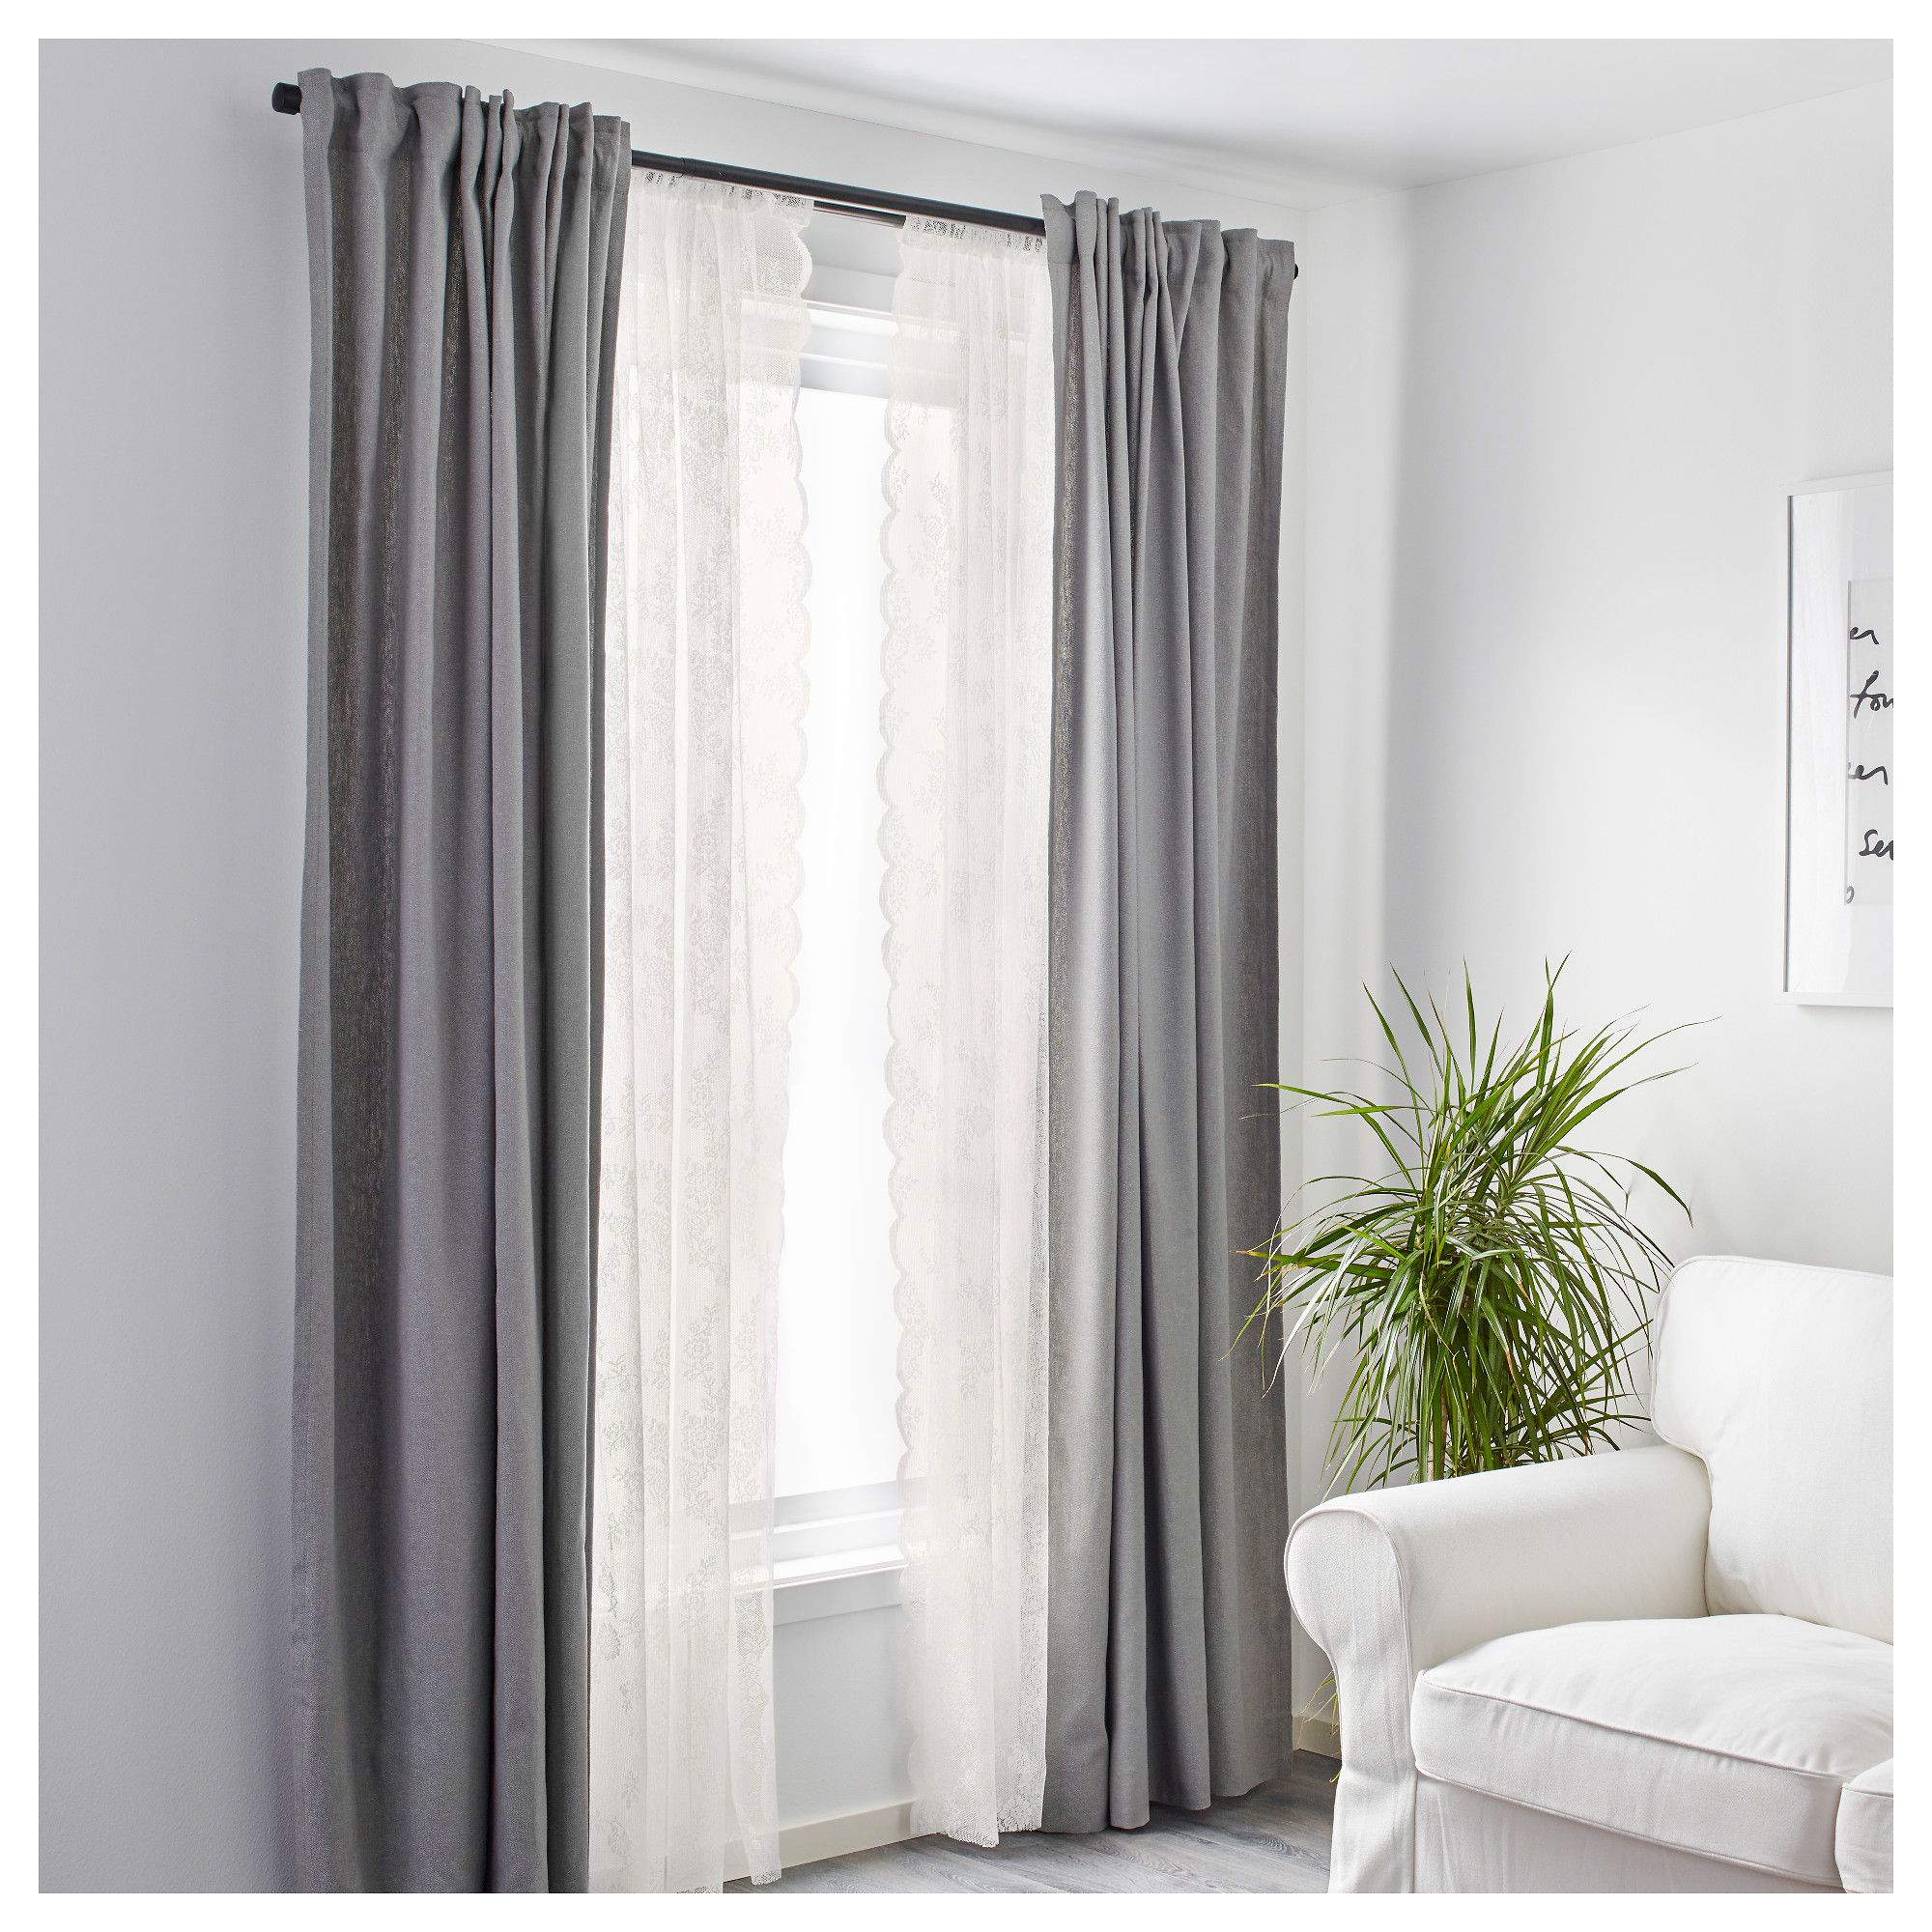 White Sheer Door Panel Curtains Alvine Spets Lace Curtains 1 Pair Off White In 2019